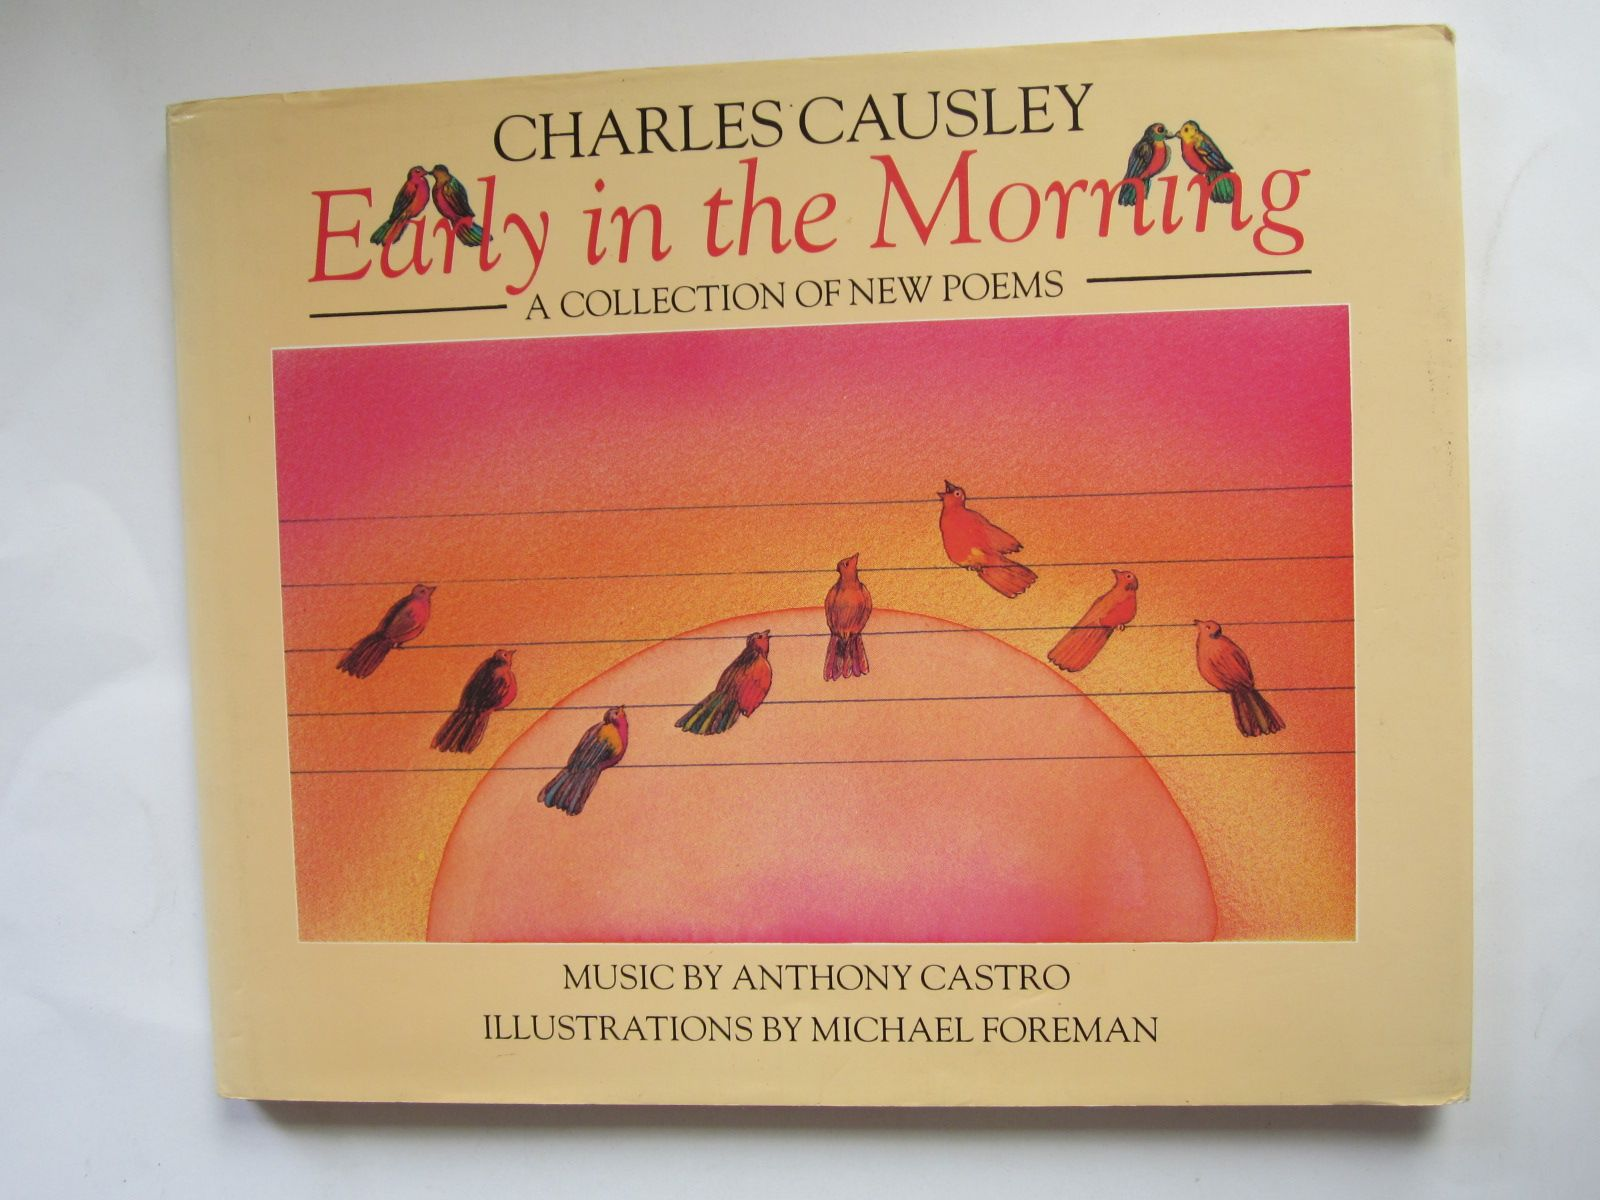 Photo of EARLY IN THE MORNING written by Causley, Charles Castro, Anthony illustrated by Foreman, Michael published by Viking Kestrel (STOCK CODE: 1501204)  for sale by Stella & Rose's Books